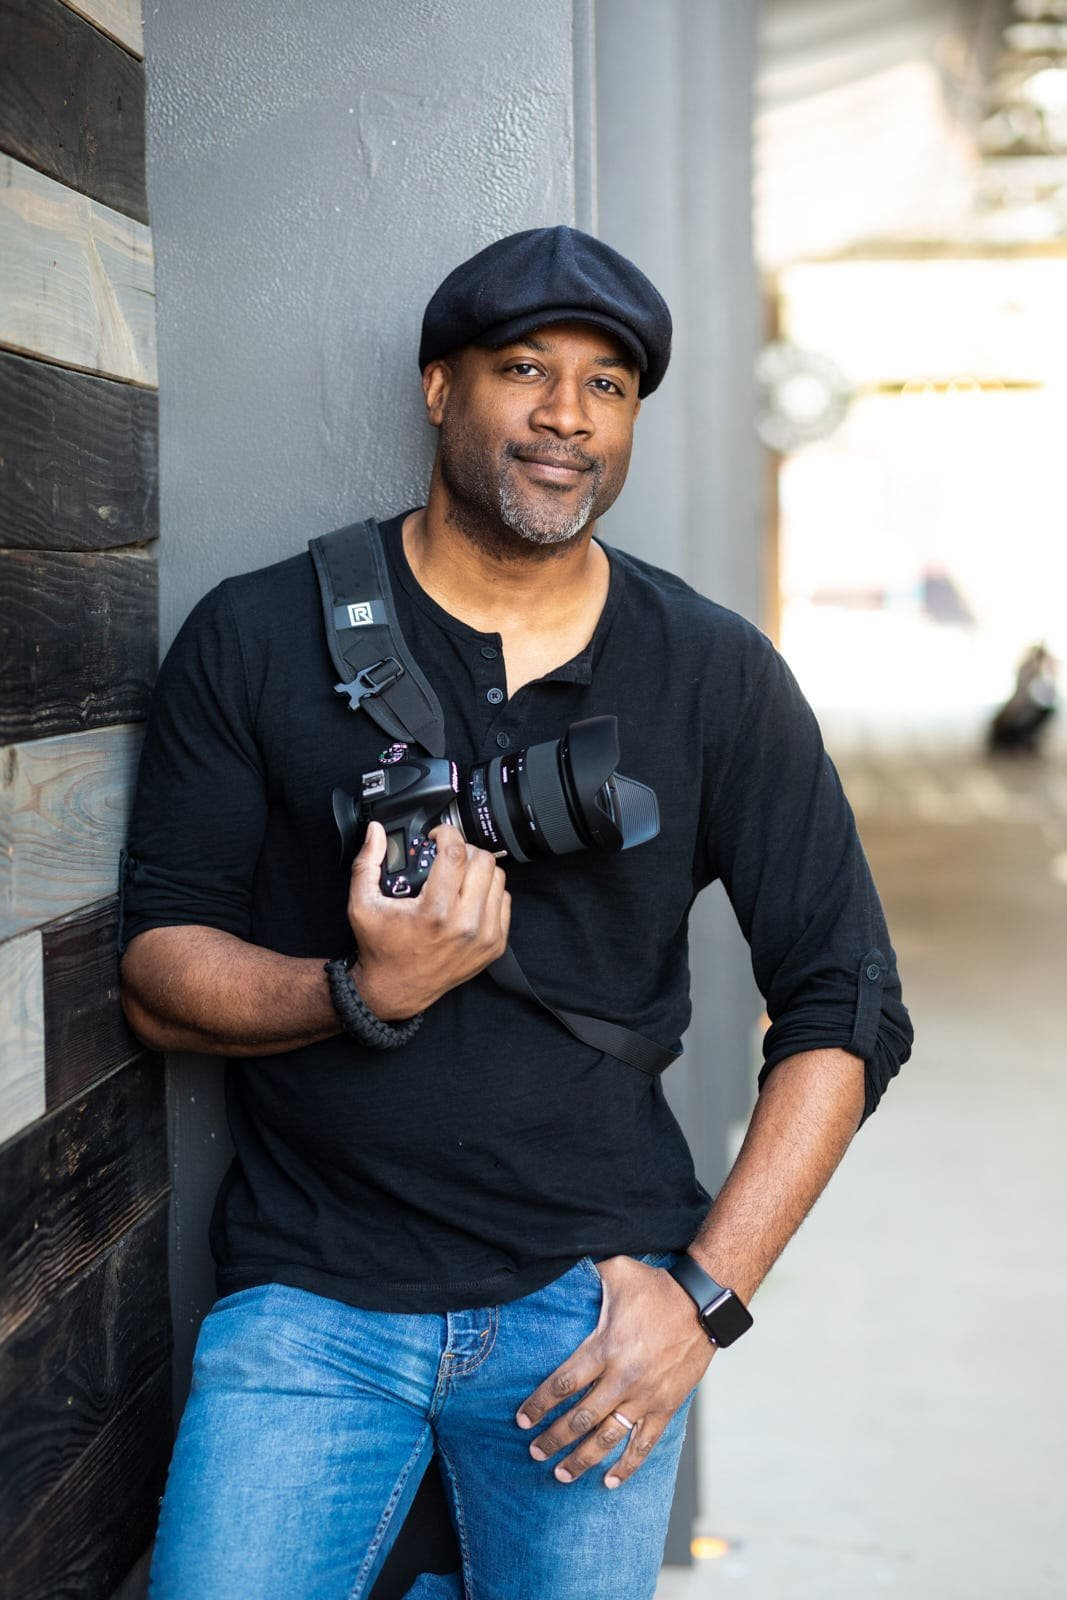 photographer holding nikon camera on black rapid strap leaning on wall Atlanta